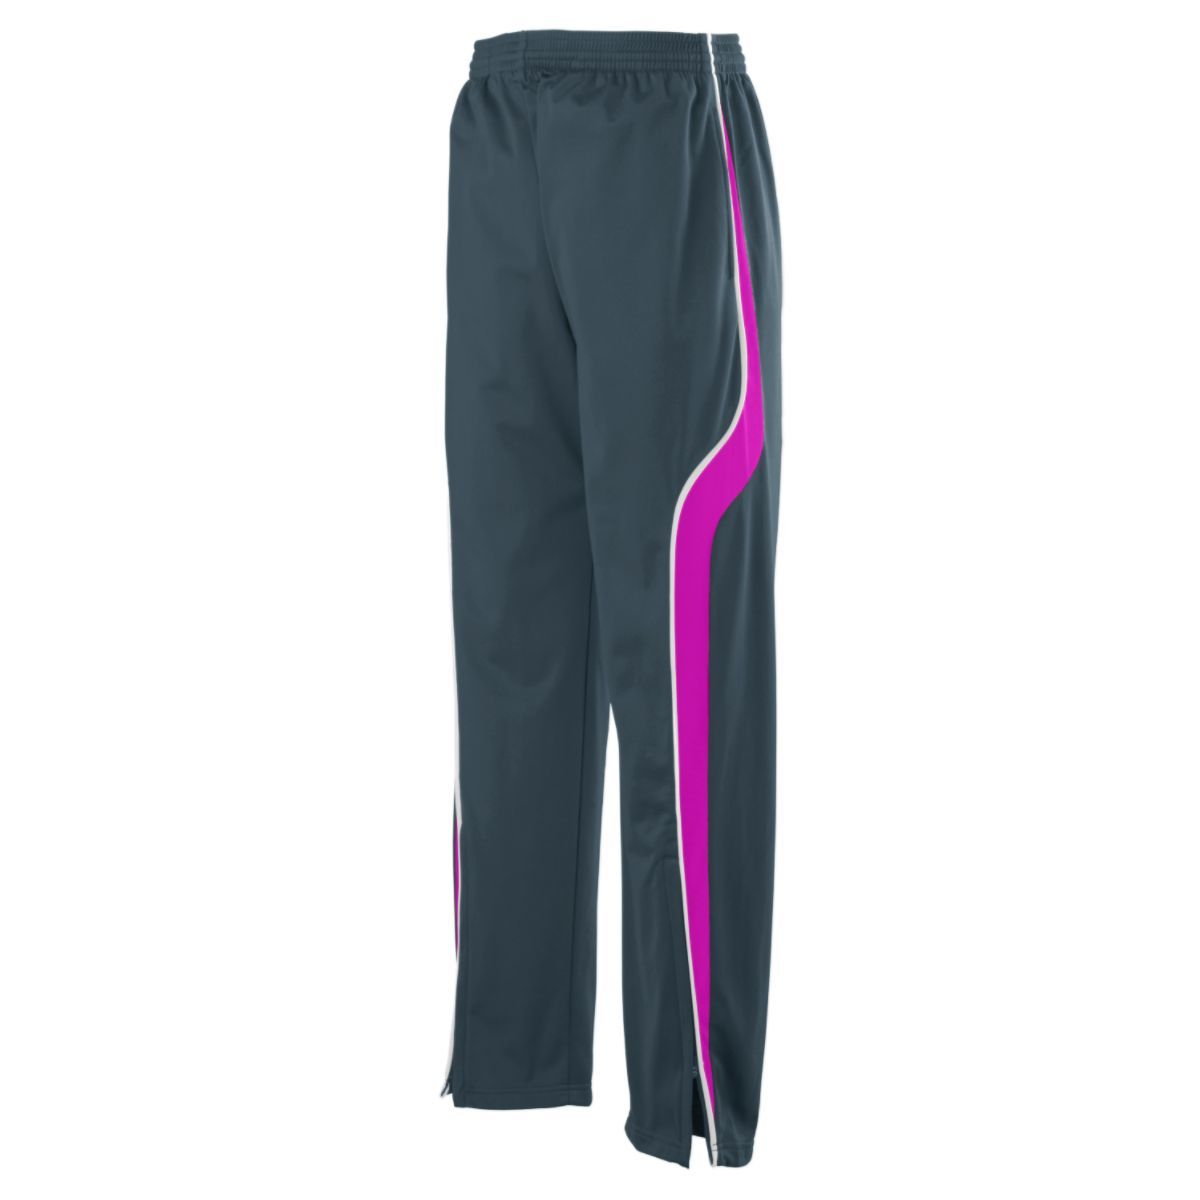 Youth Rival Pant - SLATE/POWER PINK/WHITE